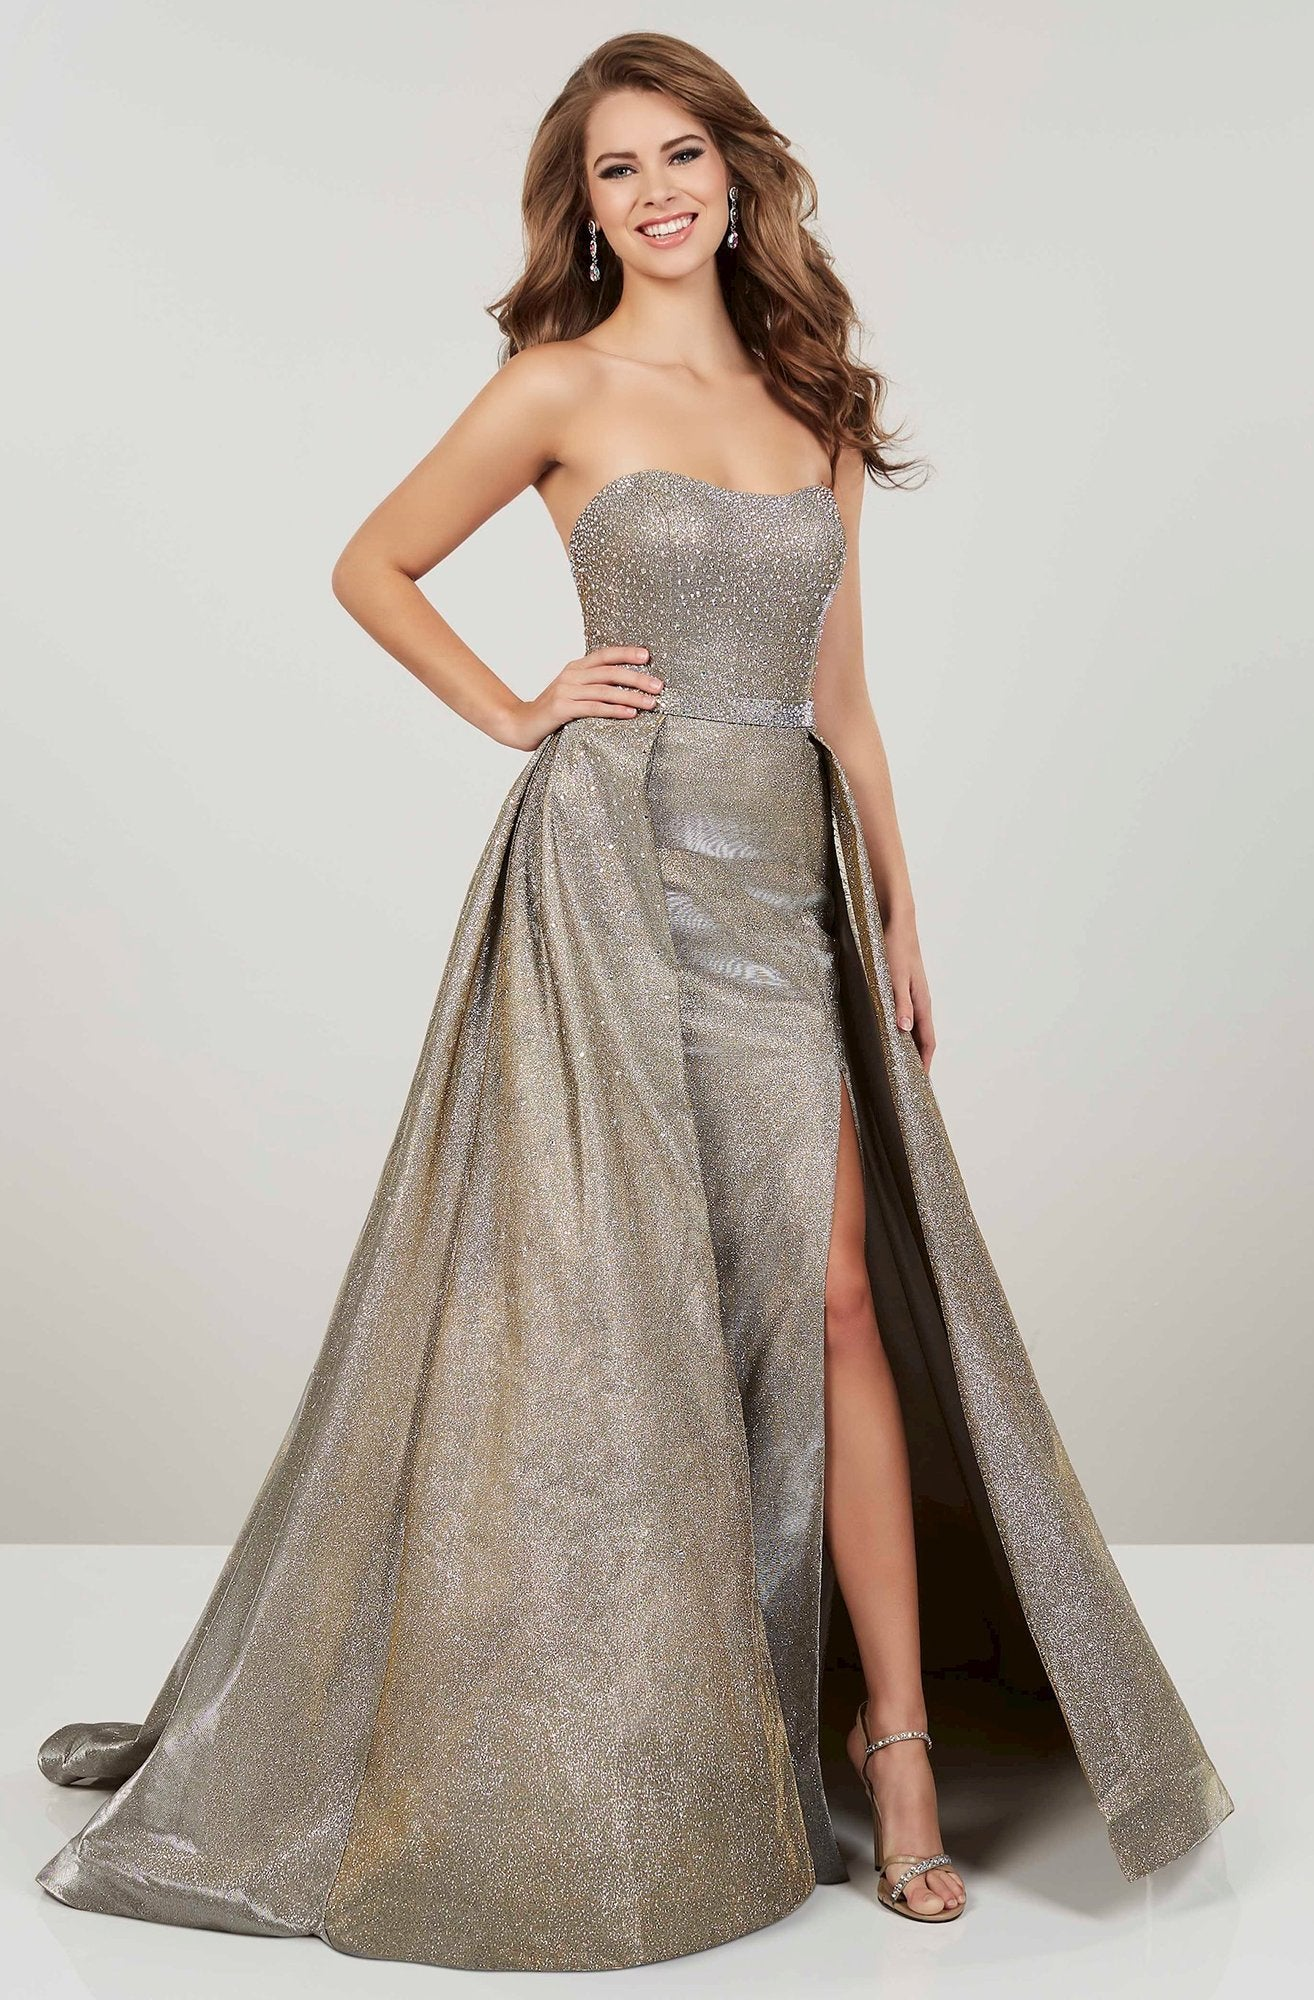 Panoply - Beaded Sweetheart Gown With Overskirt 14943 In Gold